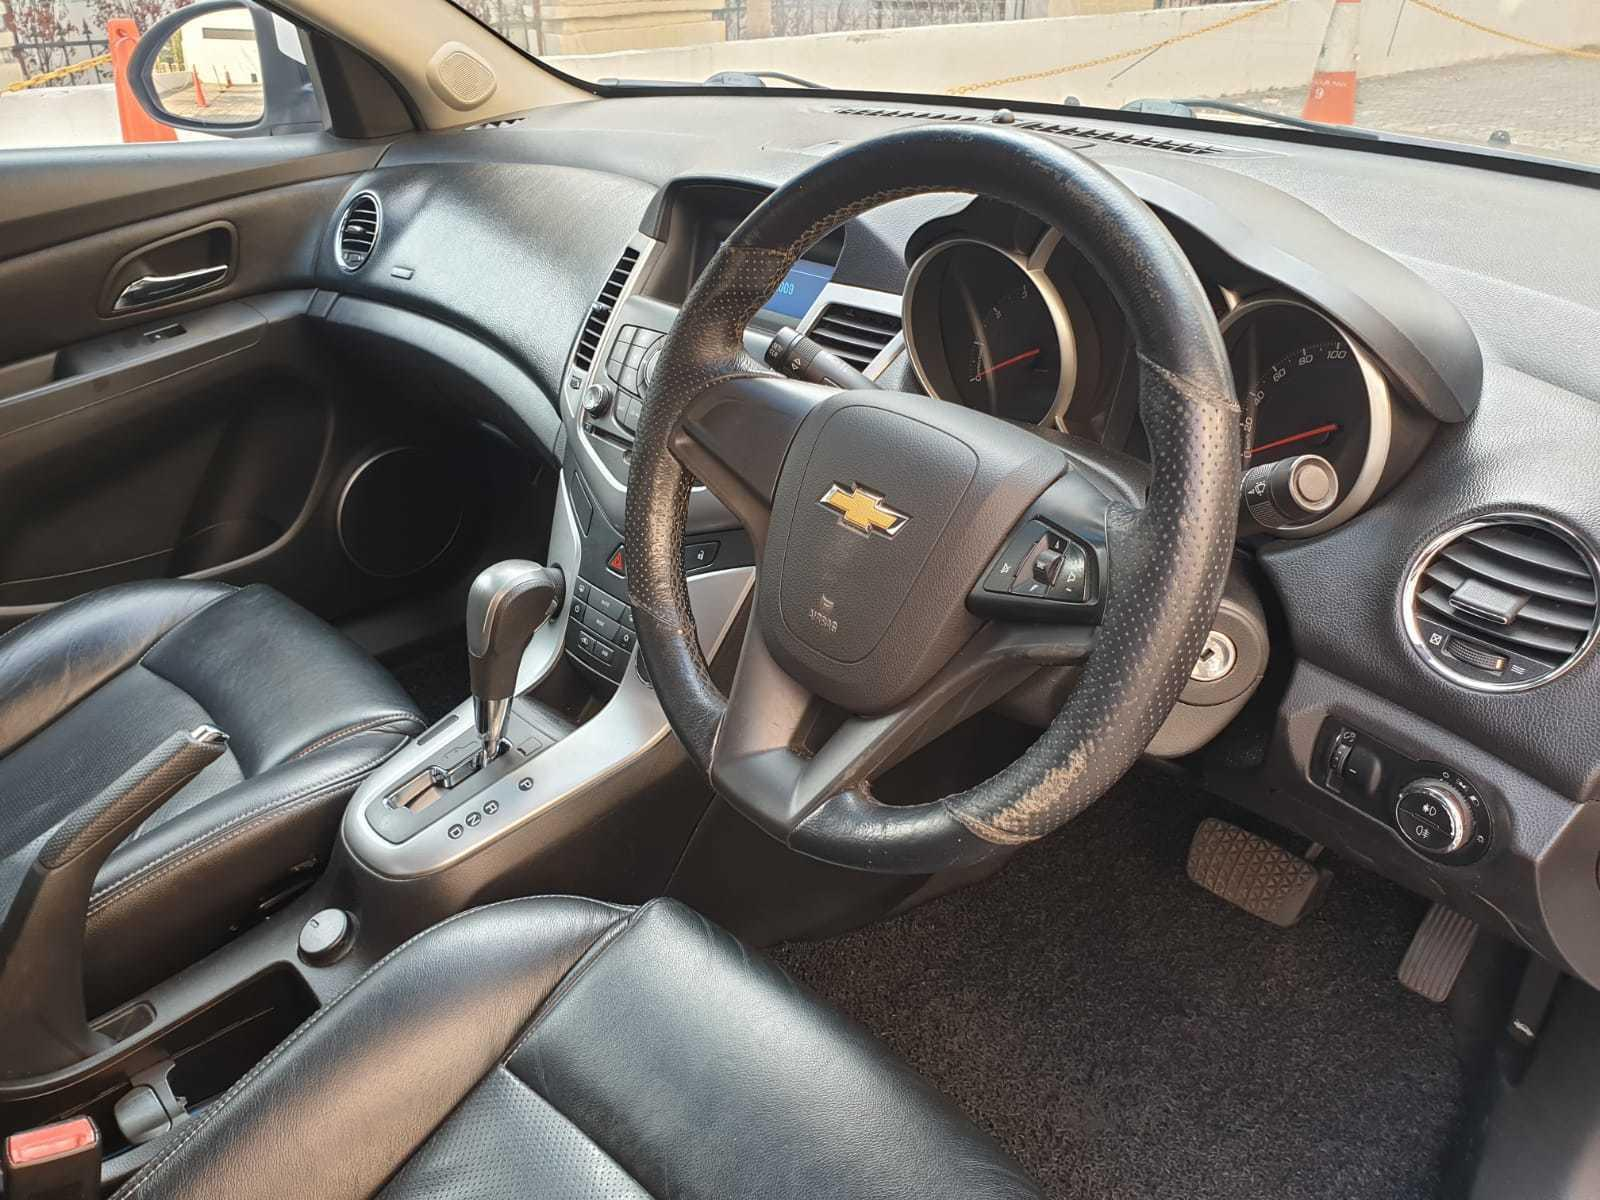 Chevrolet Cruze 1.6A - Many ranges of car to choose from, with very reliable rates!